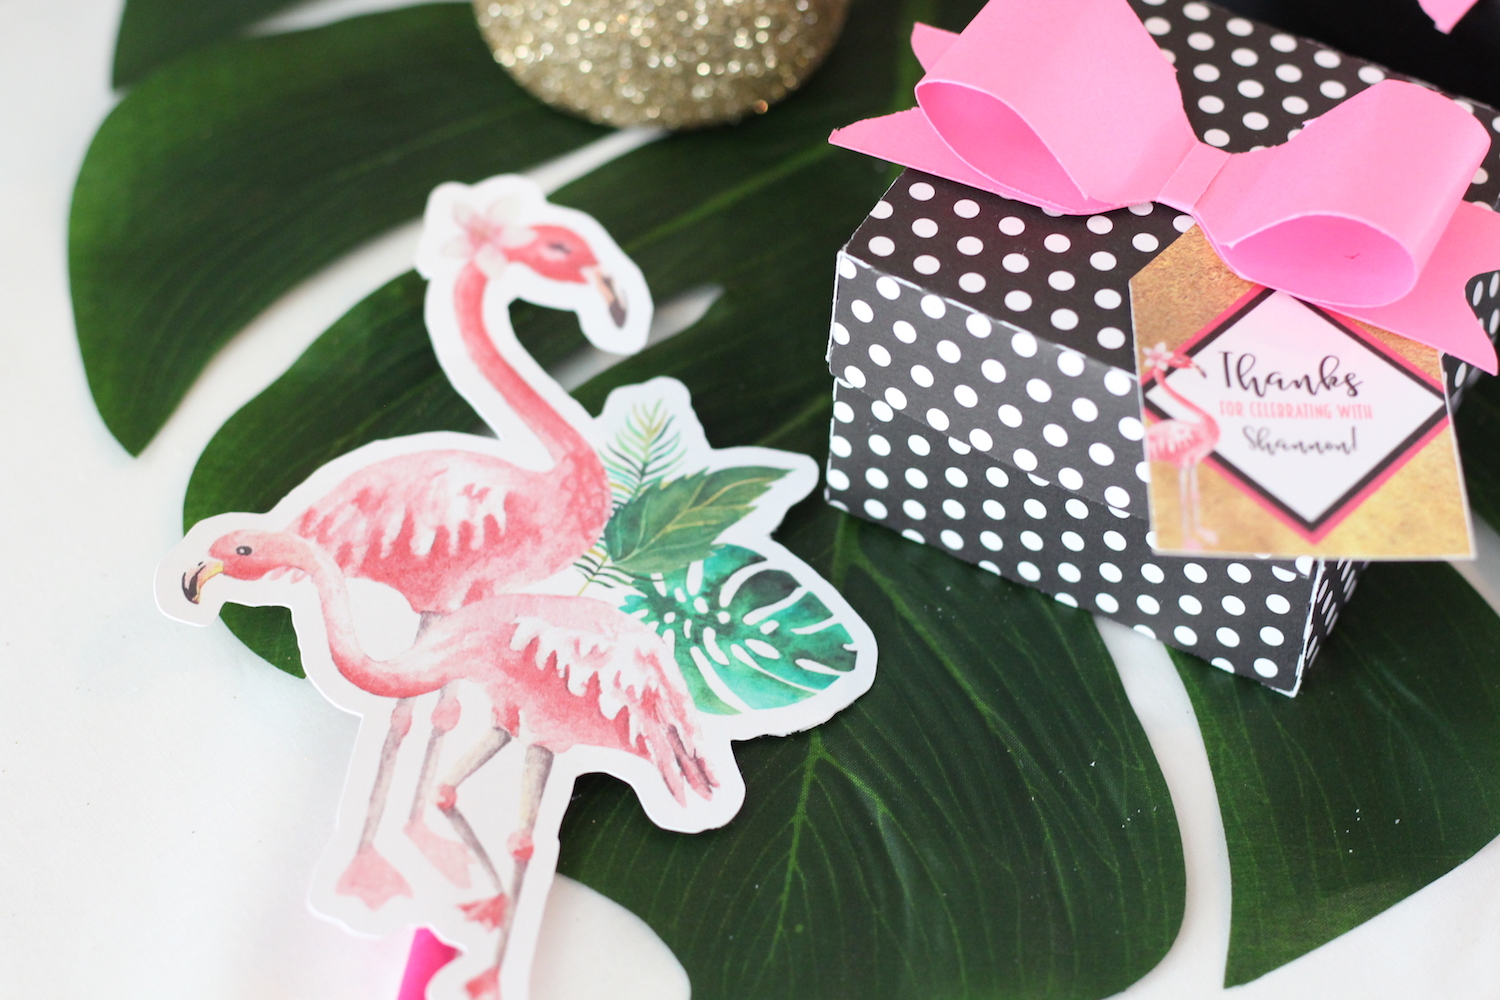 Let's Flamingo Bachelorette Party Printables - Flamingos for Straws and Favor Boxes with Pink Paper Bows {perfect for a bridal shower, even a bridal brunch as the theme is super versatile}. As seen on www.brendasweddingblog.com